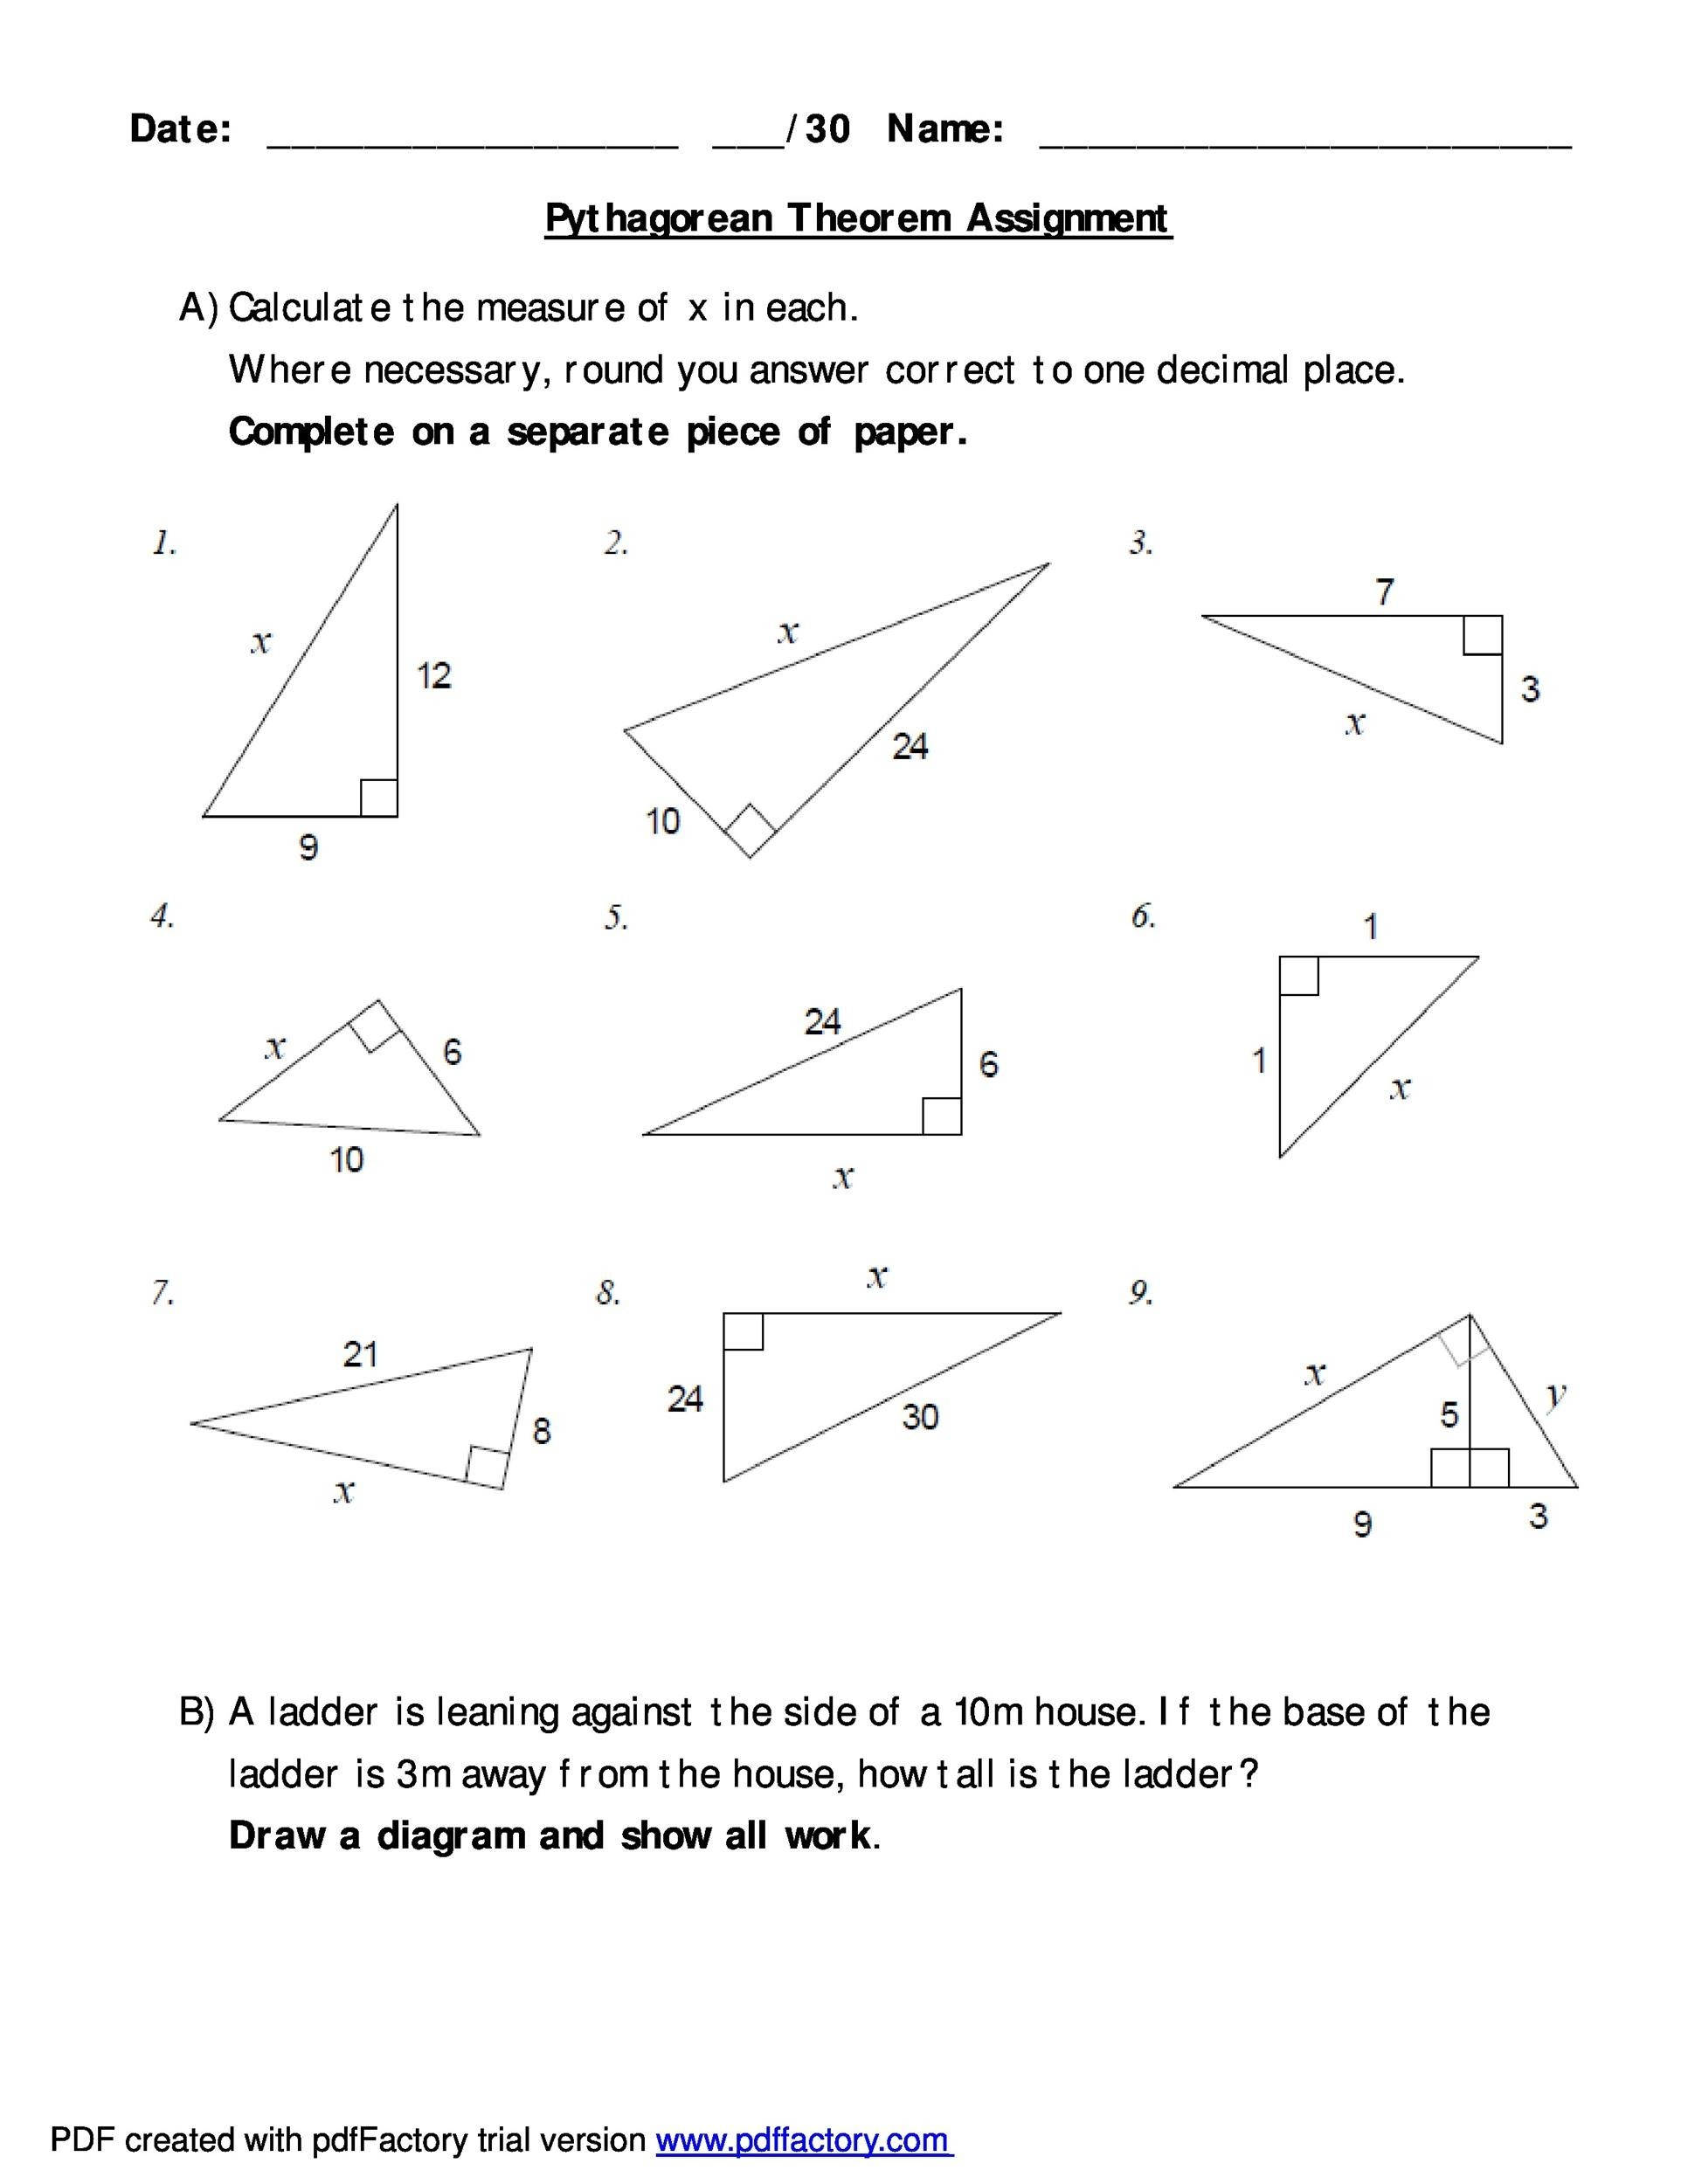 Worksheets Pythagorean Theorem Worksheet Pdf 48 pythagorean theorem worksheet with answers word pdf free 03